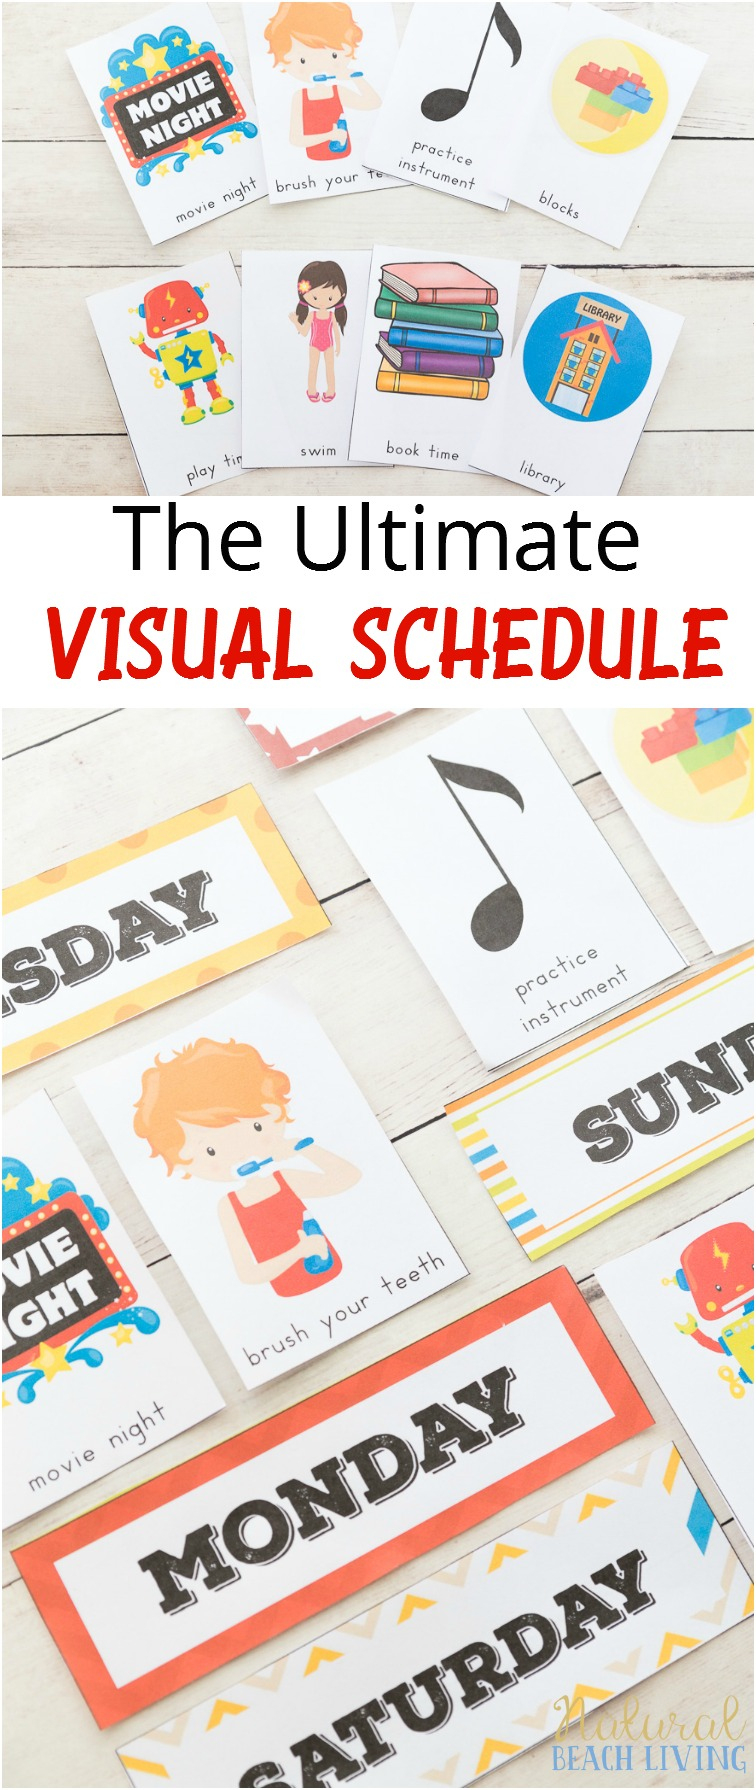 Daily Visual Schedule For Kids Free Printable - Natural Beach Living - Free Printable Daily Routine Picture Cards